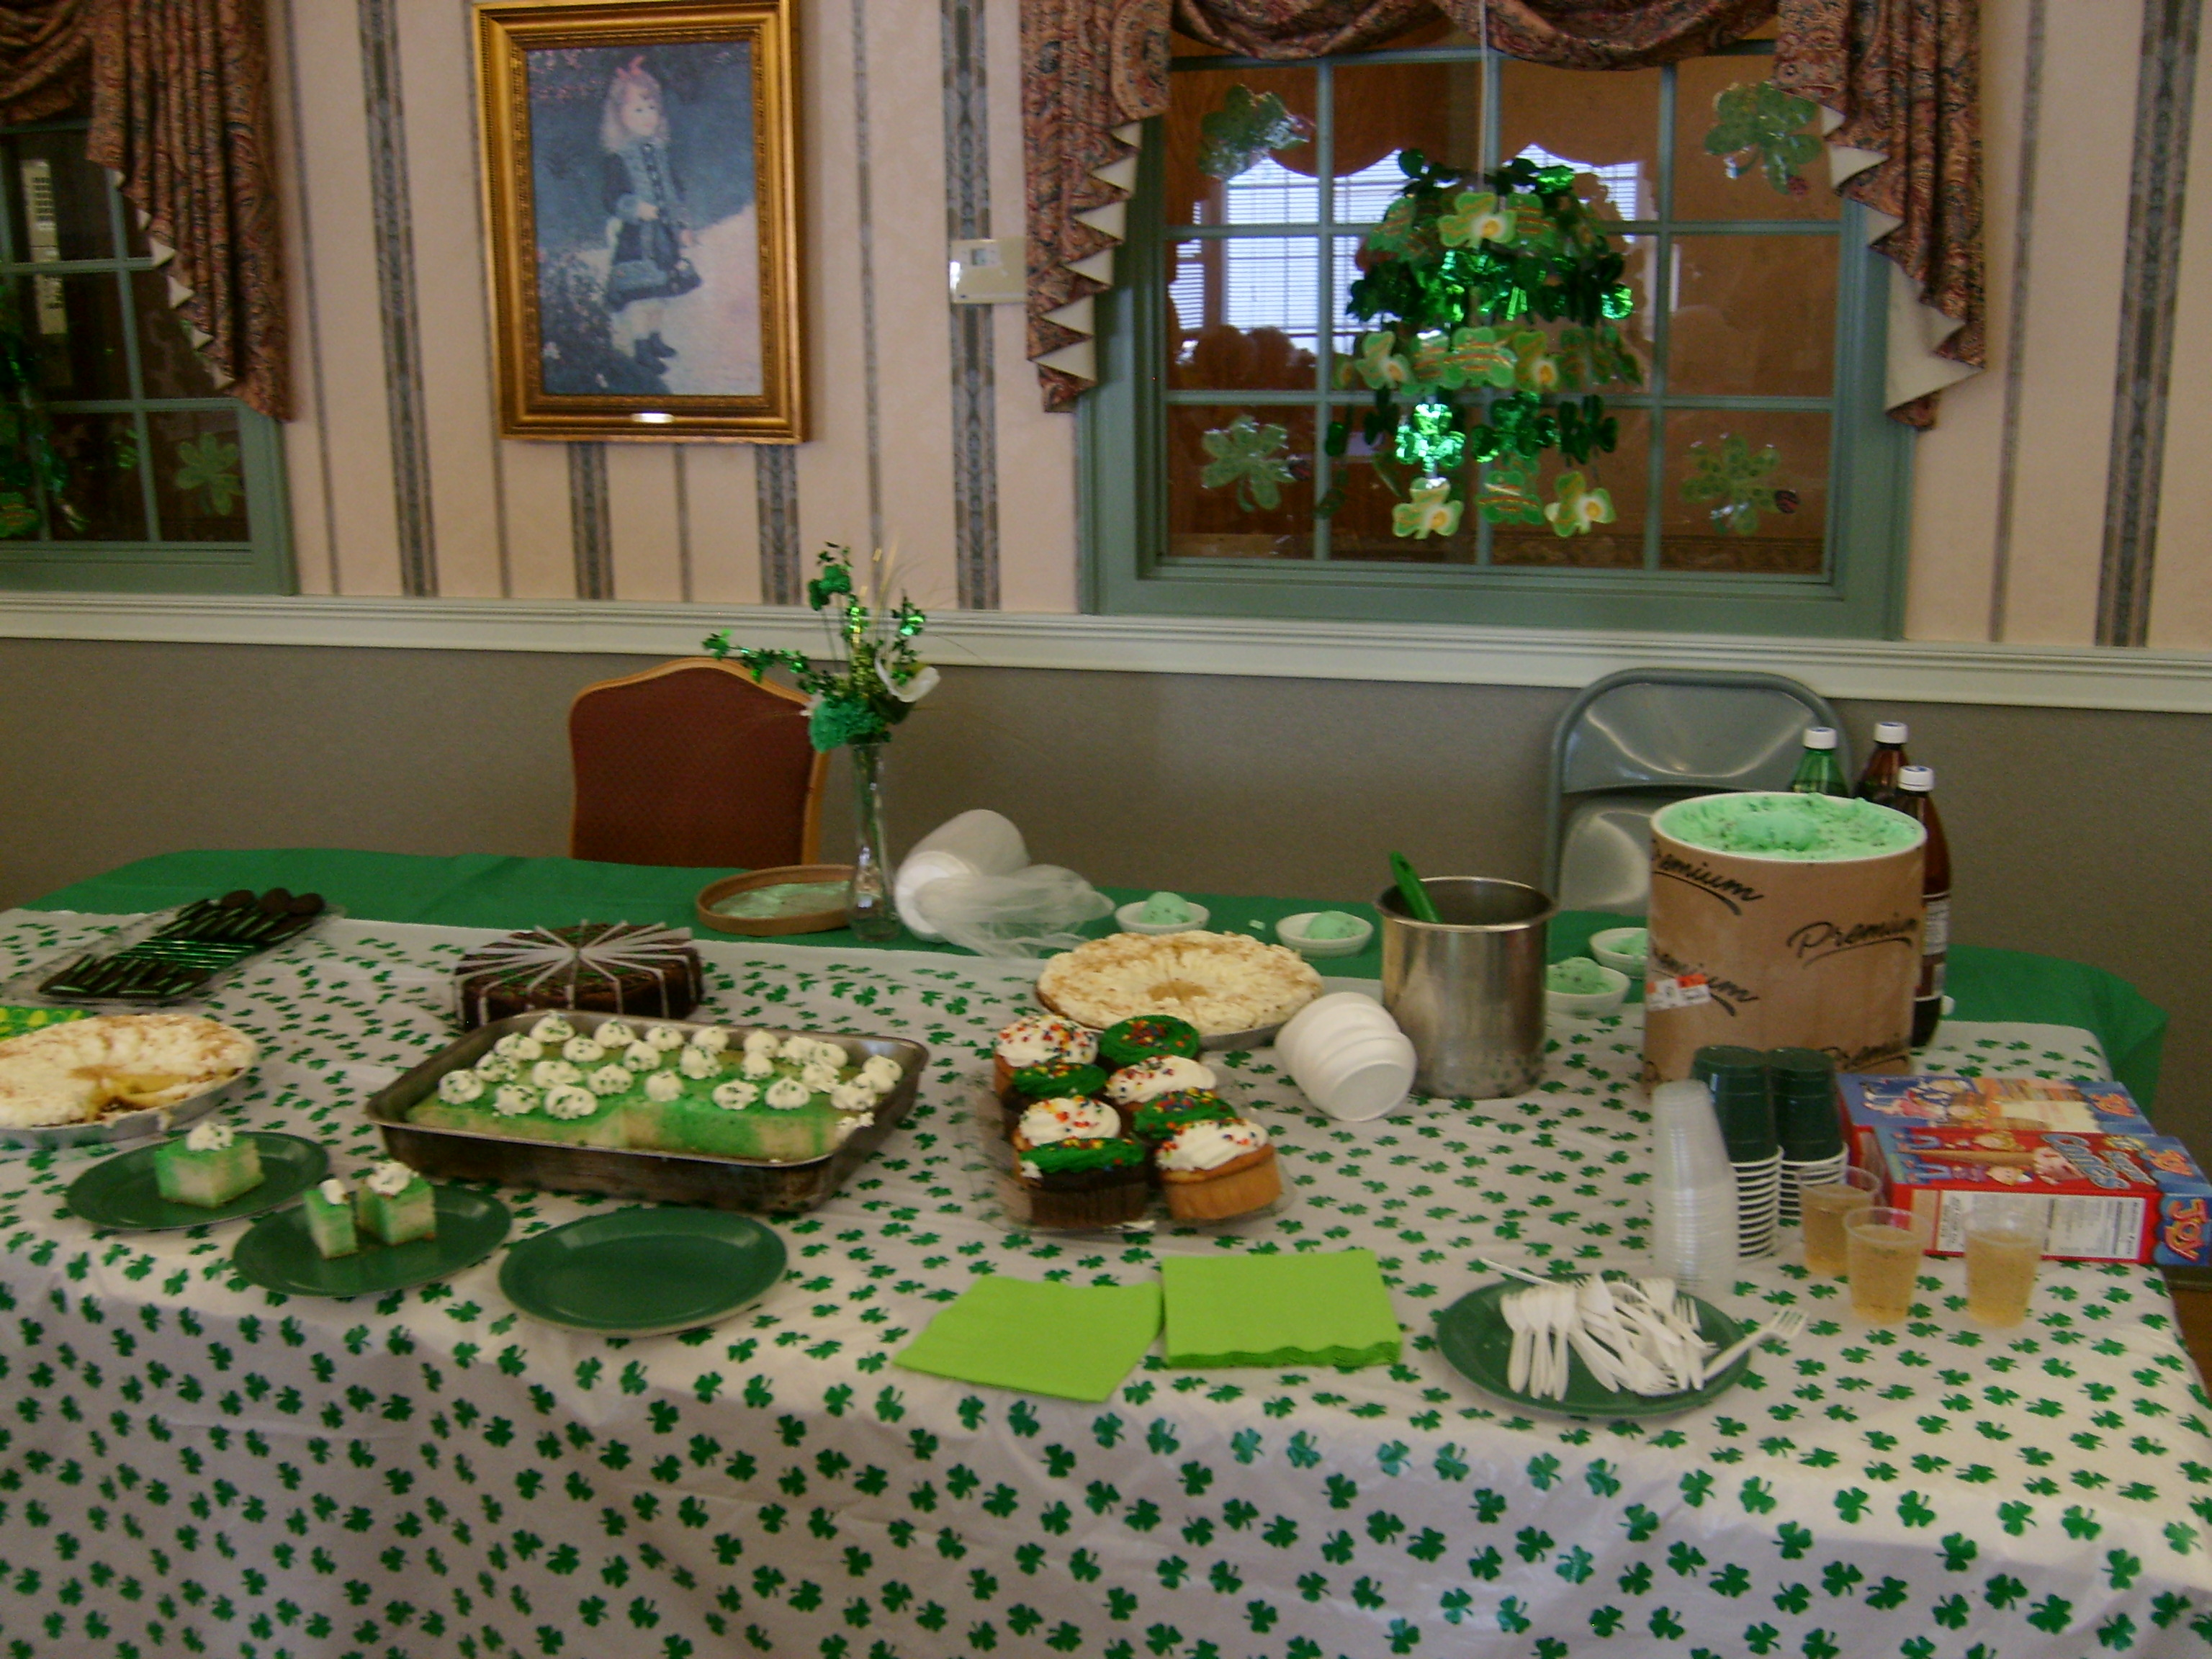 Table all set for St. Paddy's social